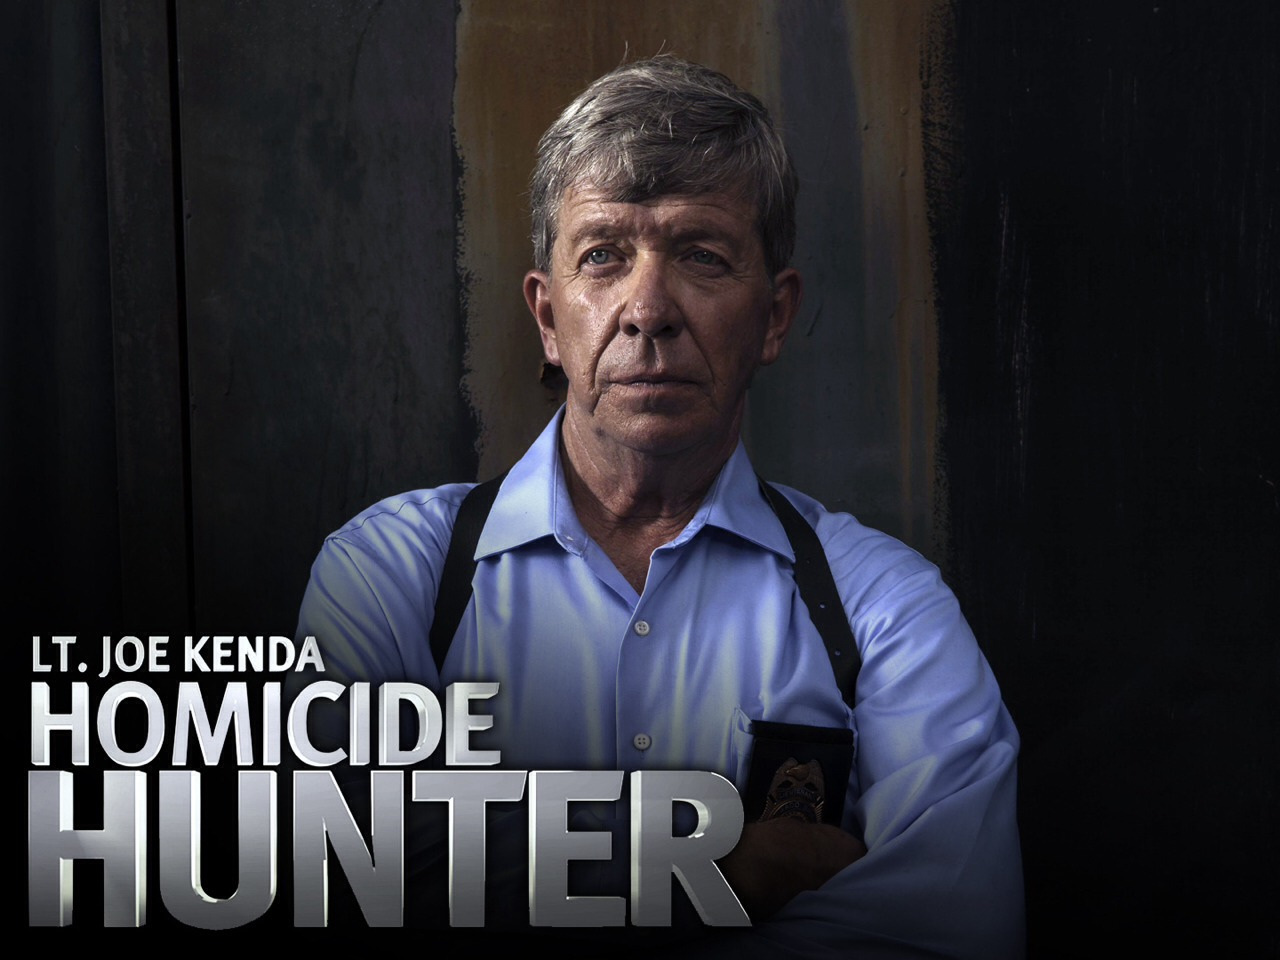 Joe kenda homicide hunter cancelled homicide hunter lt joe kenda joe